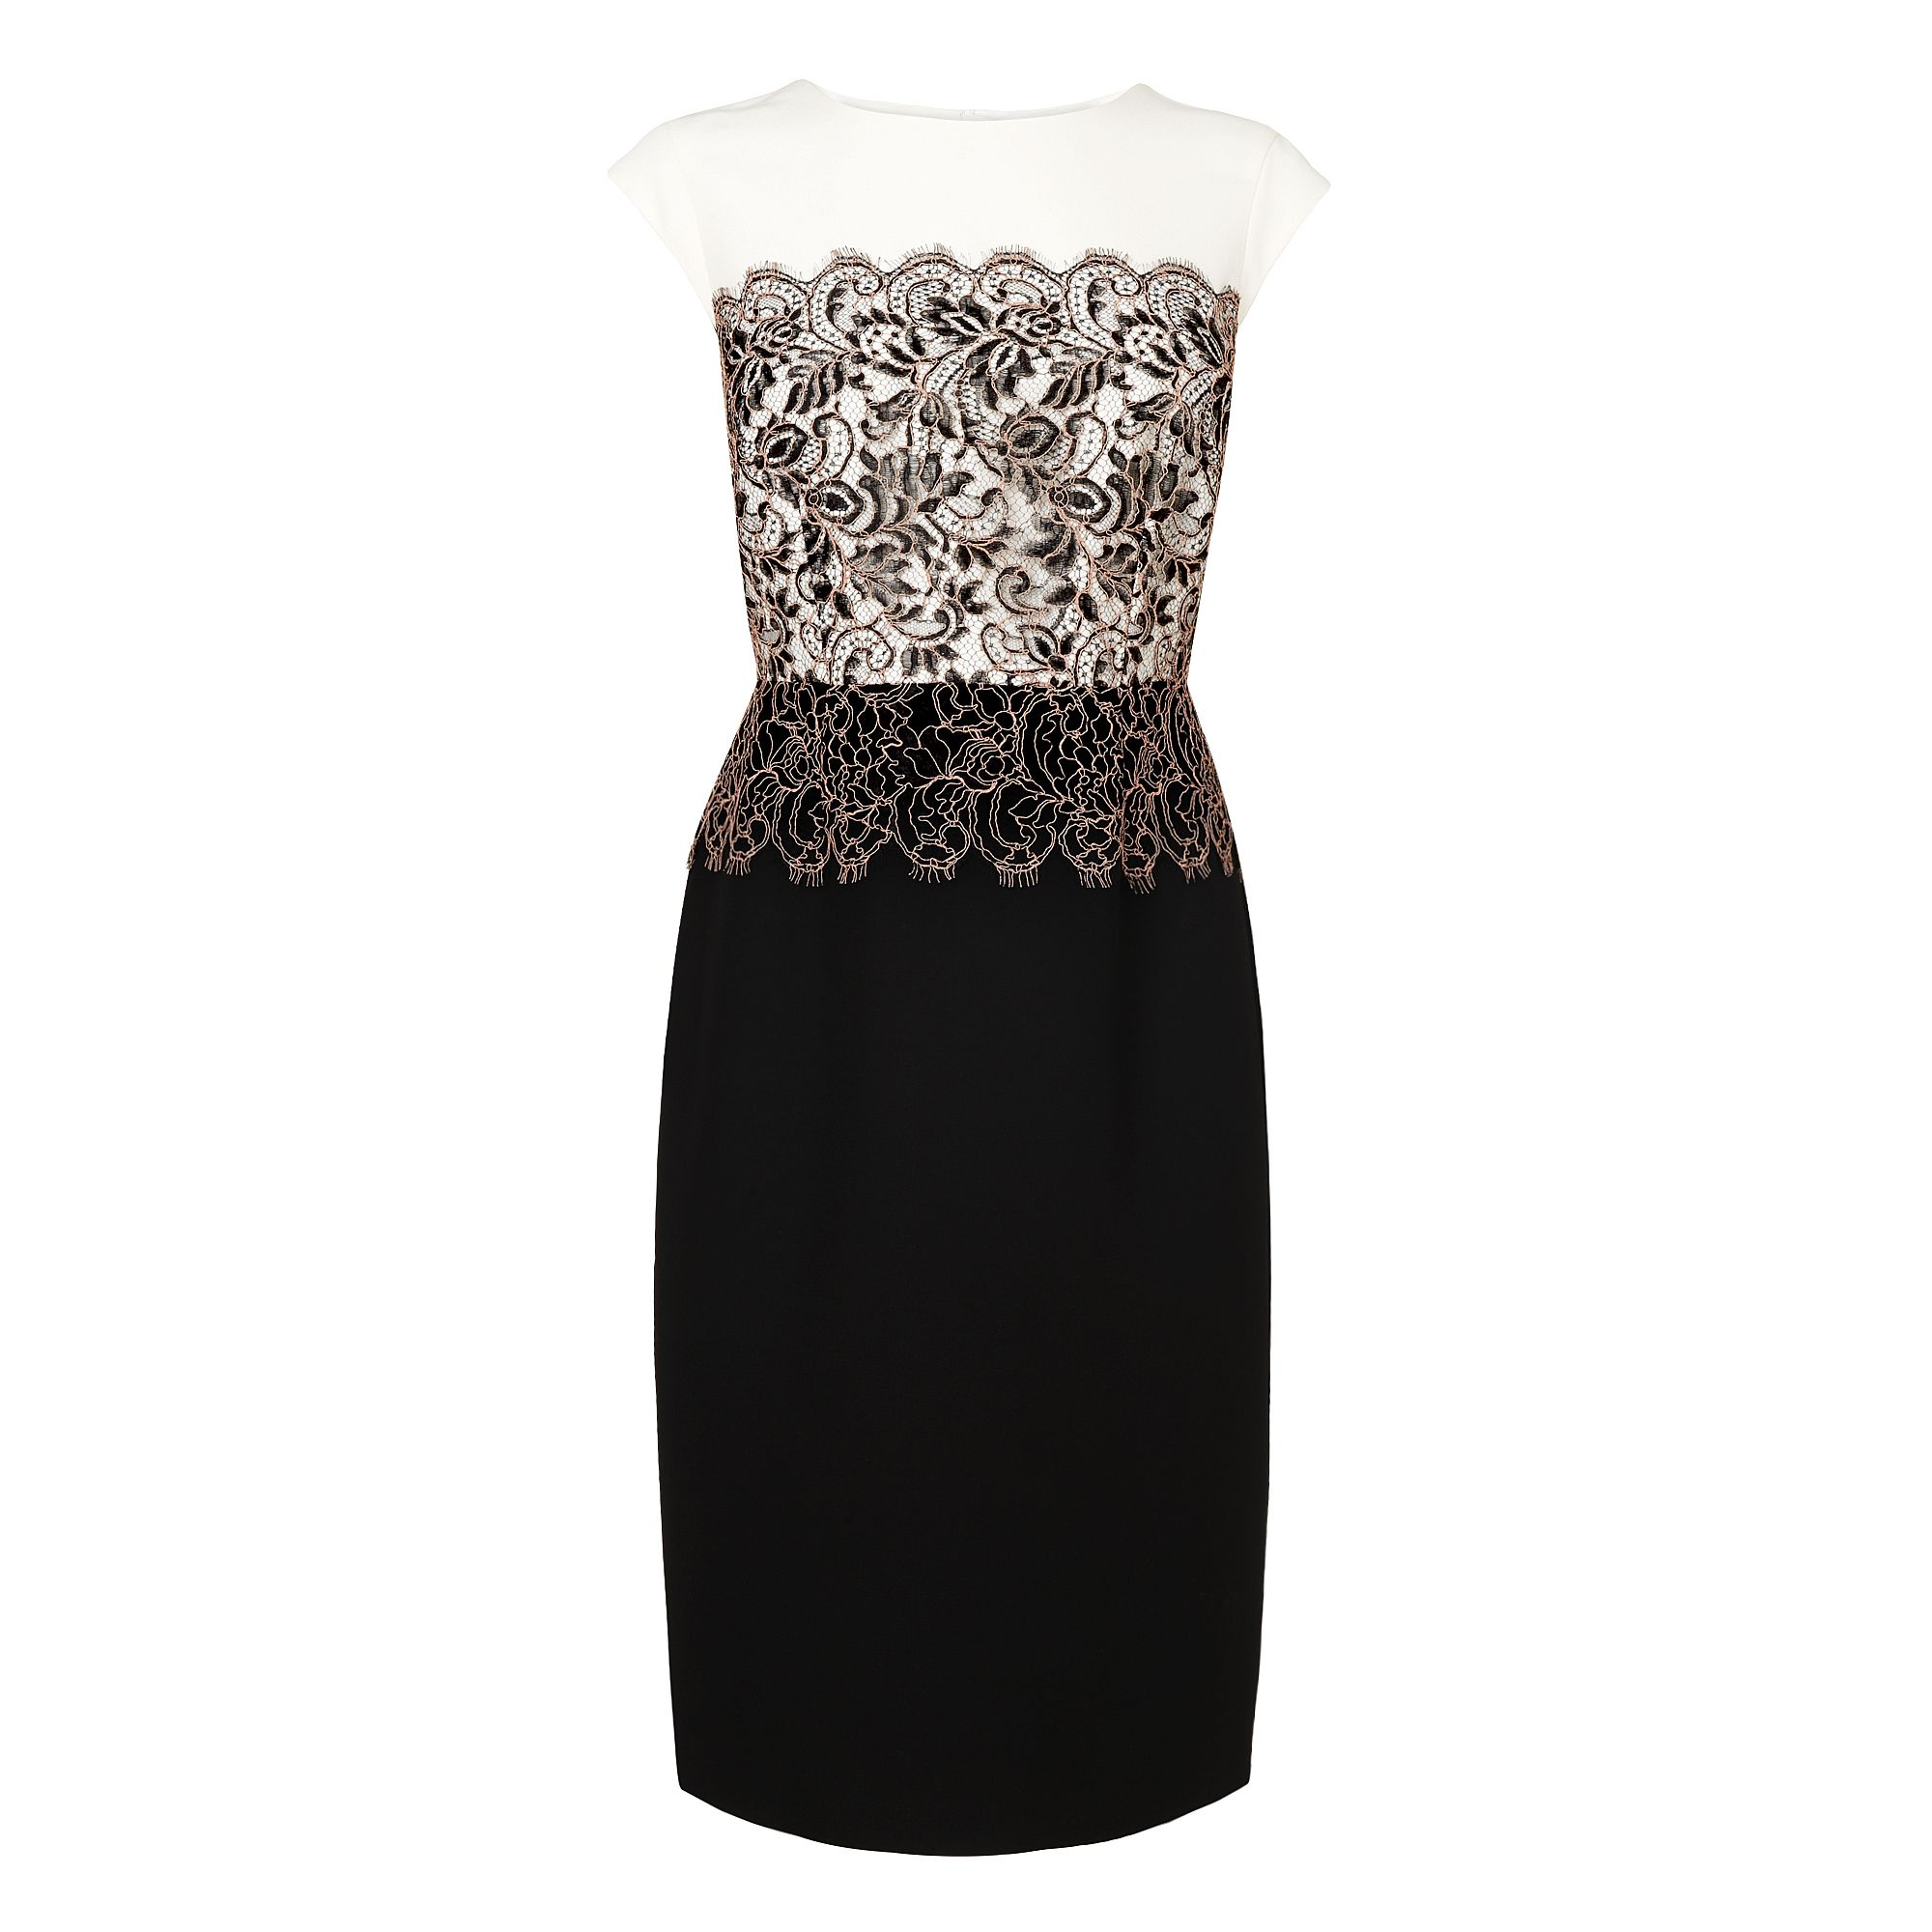 Fincham Lace Dress